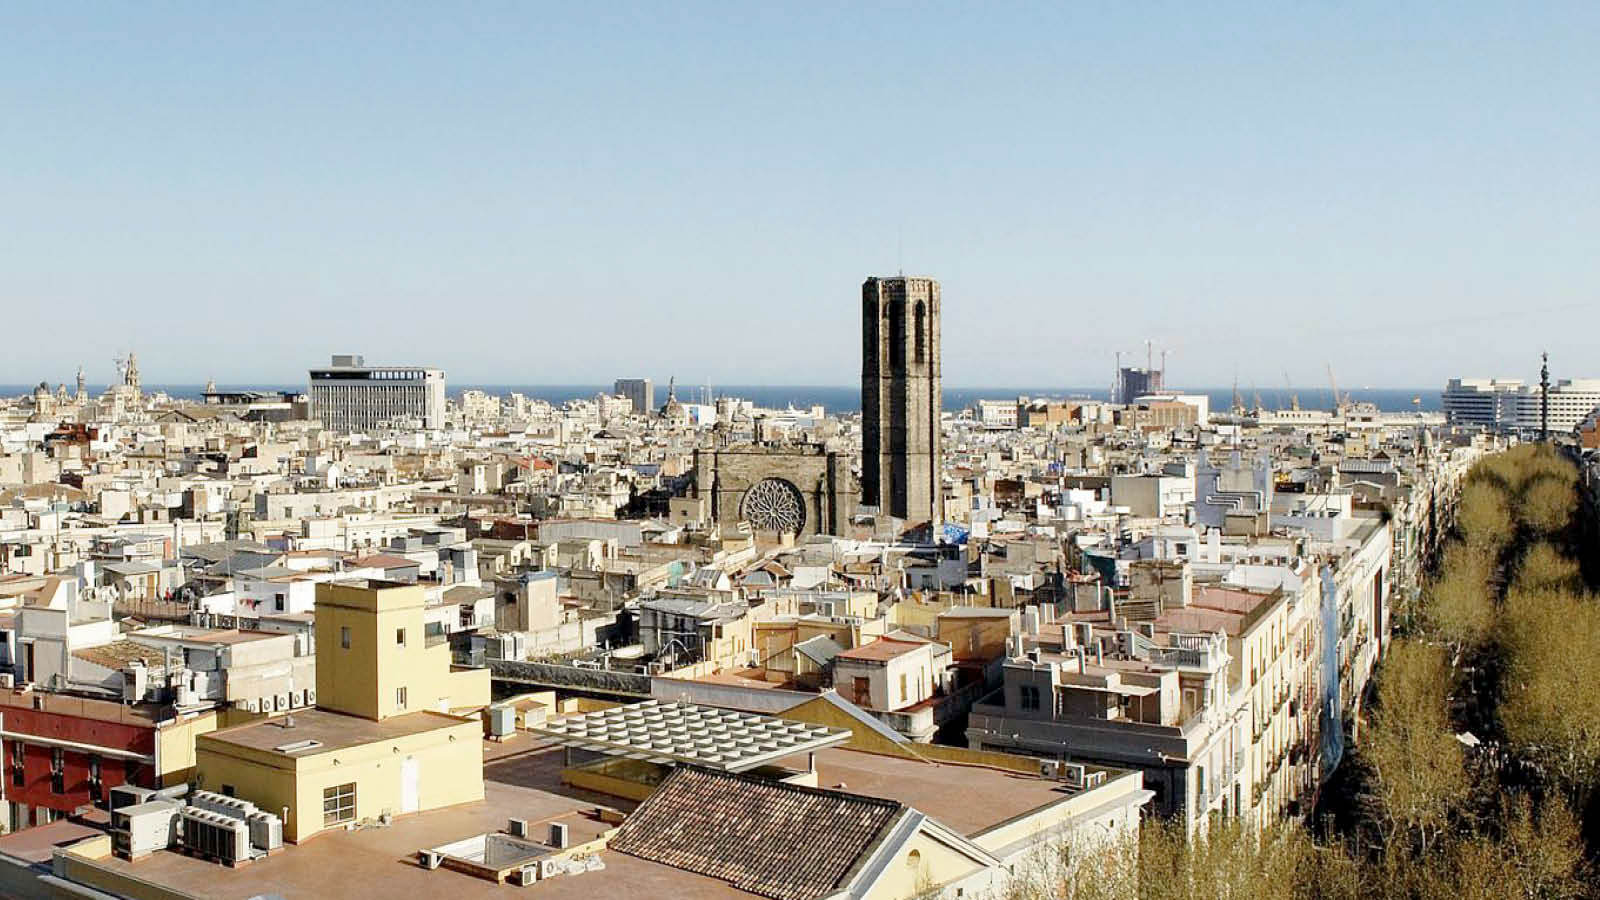 Enjoy great views and stay in the heart of the city | Le Méridien Barcelona